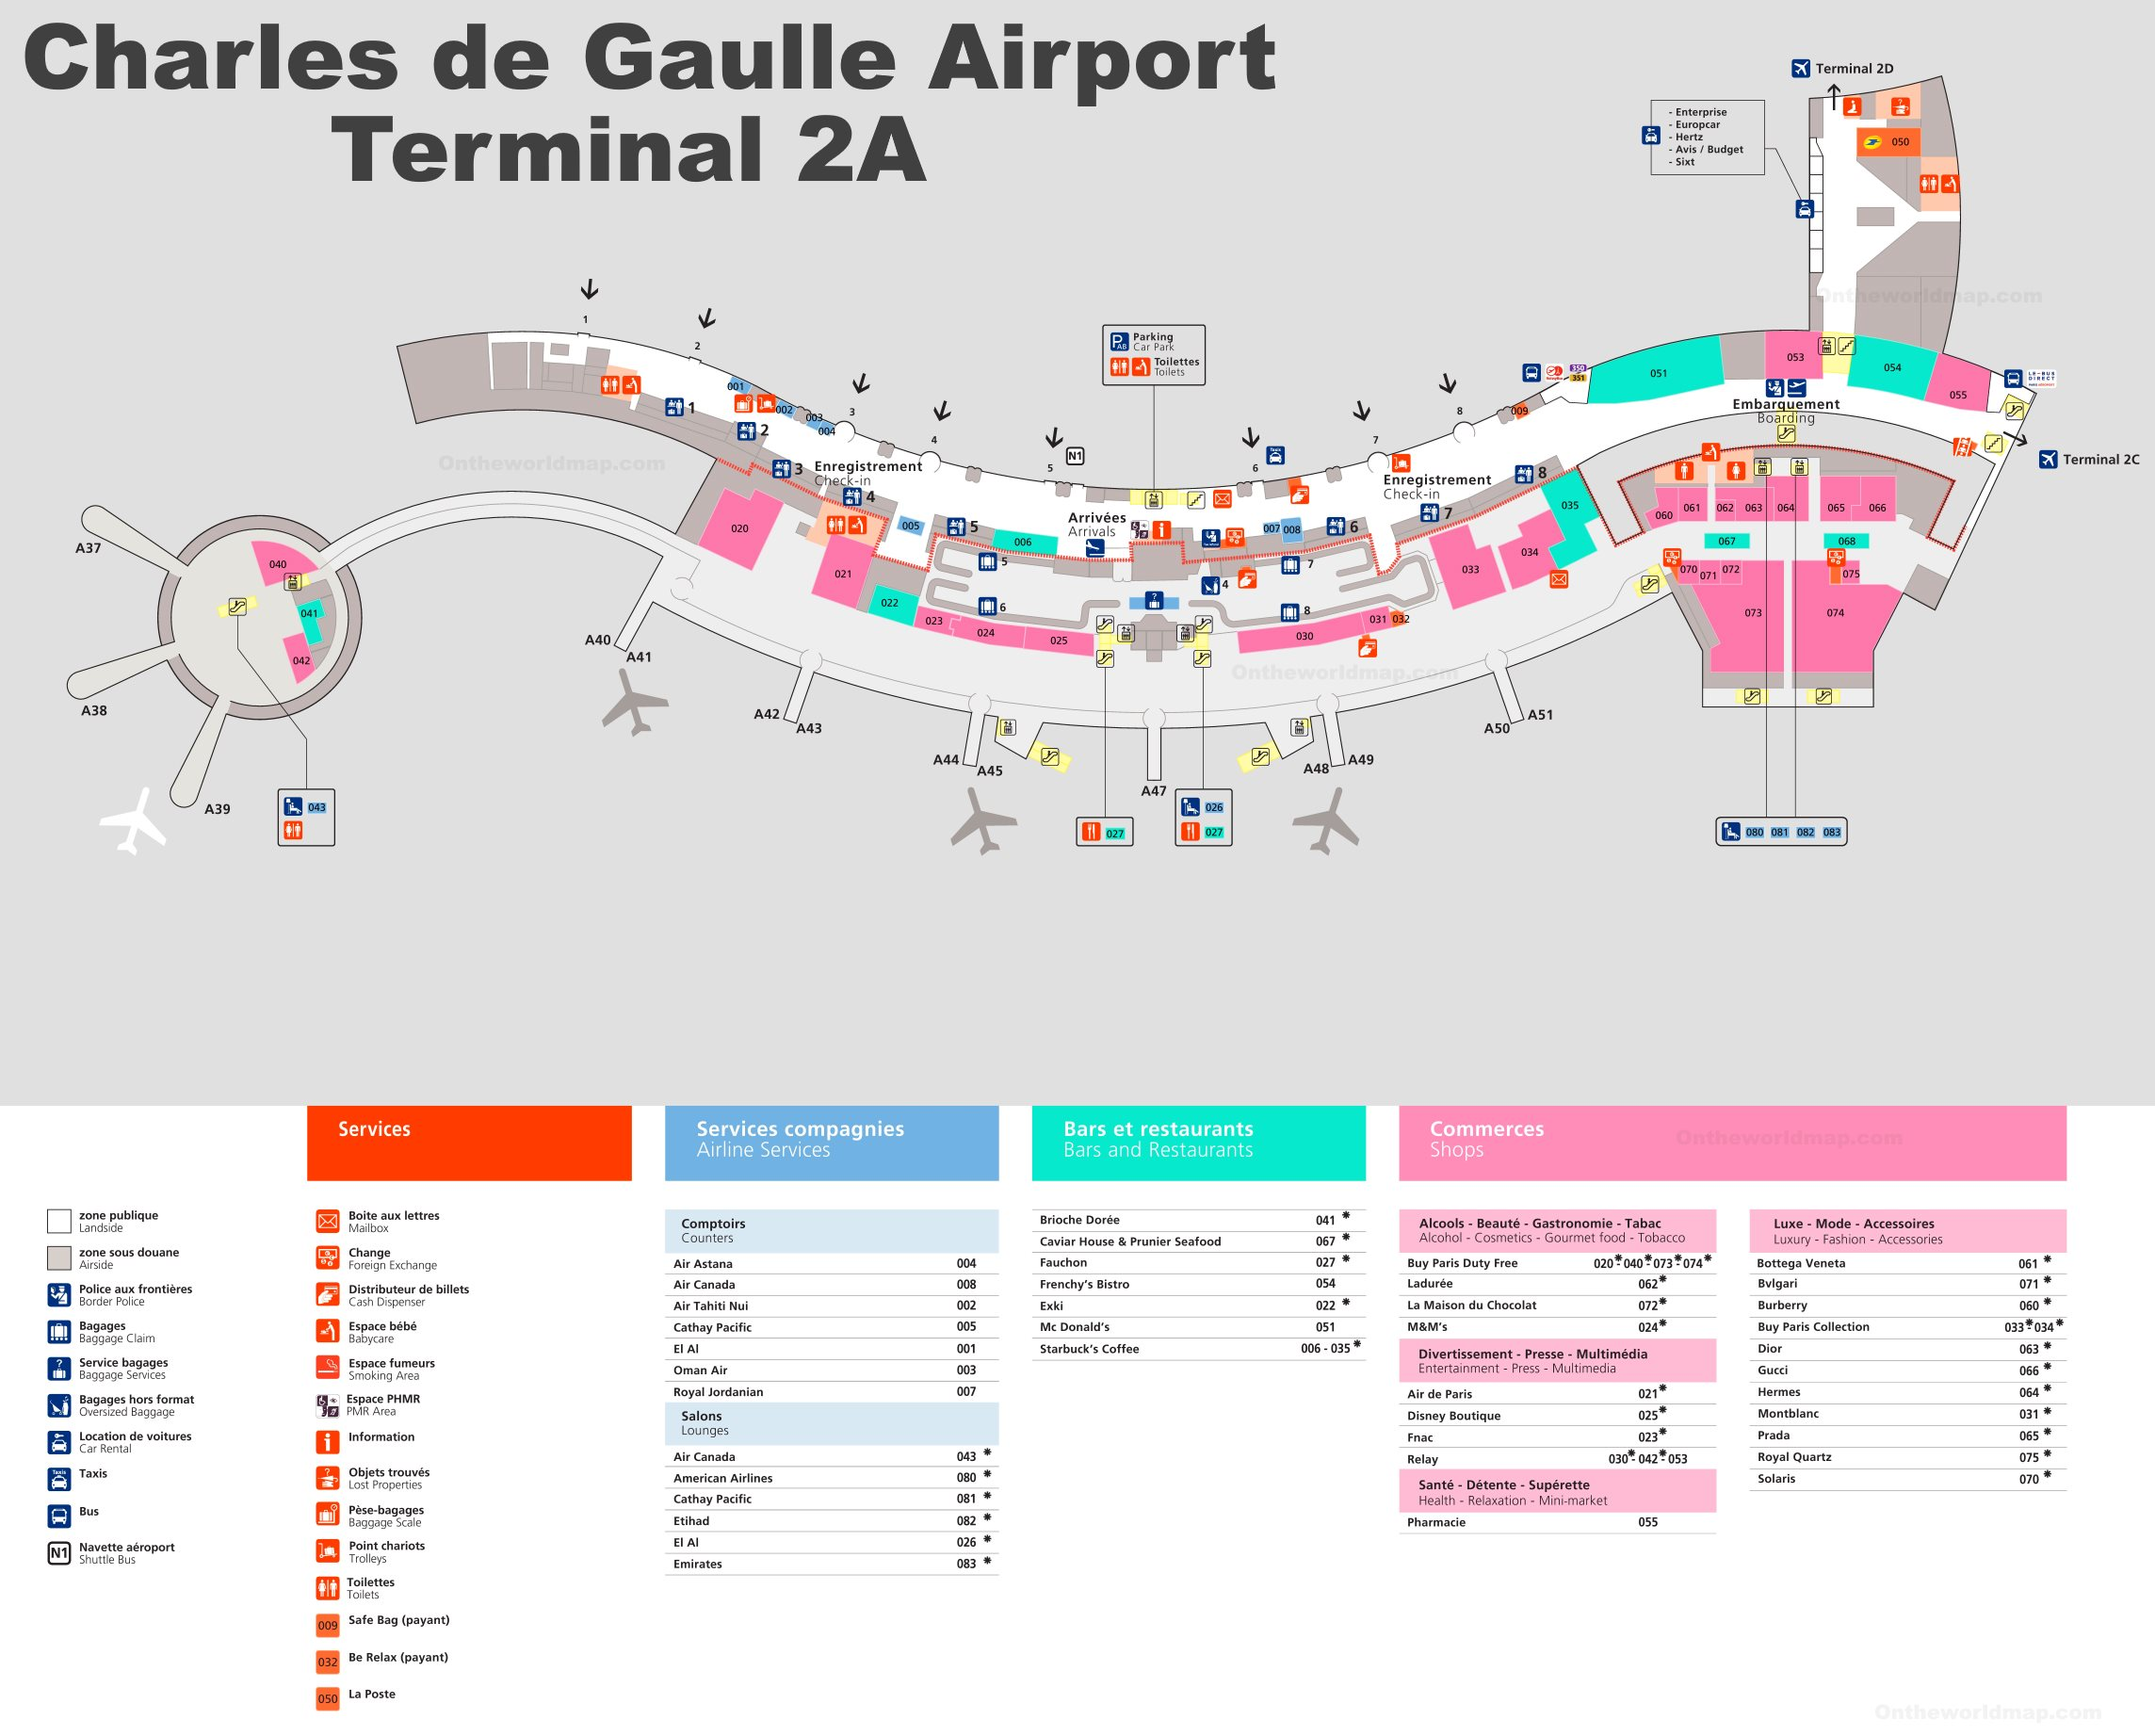 Charles de Gaulle Airport Terminal 2A Map on